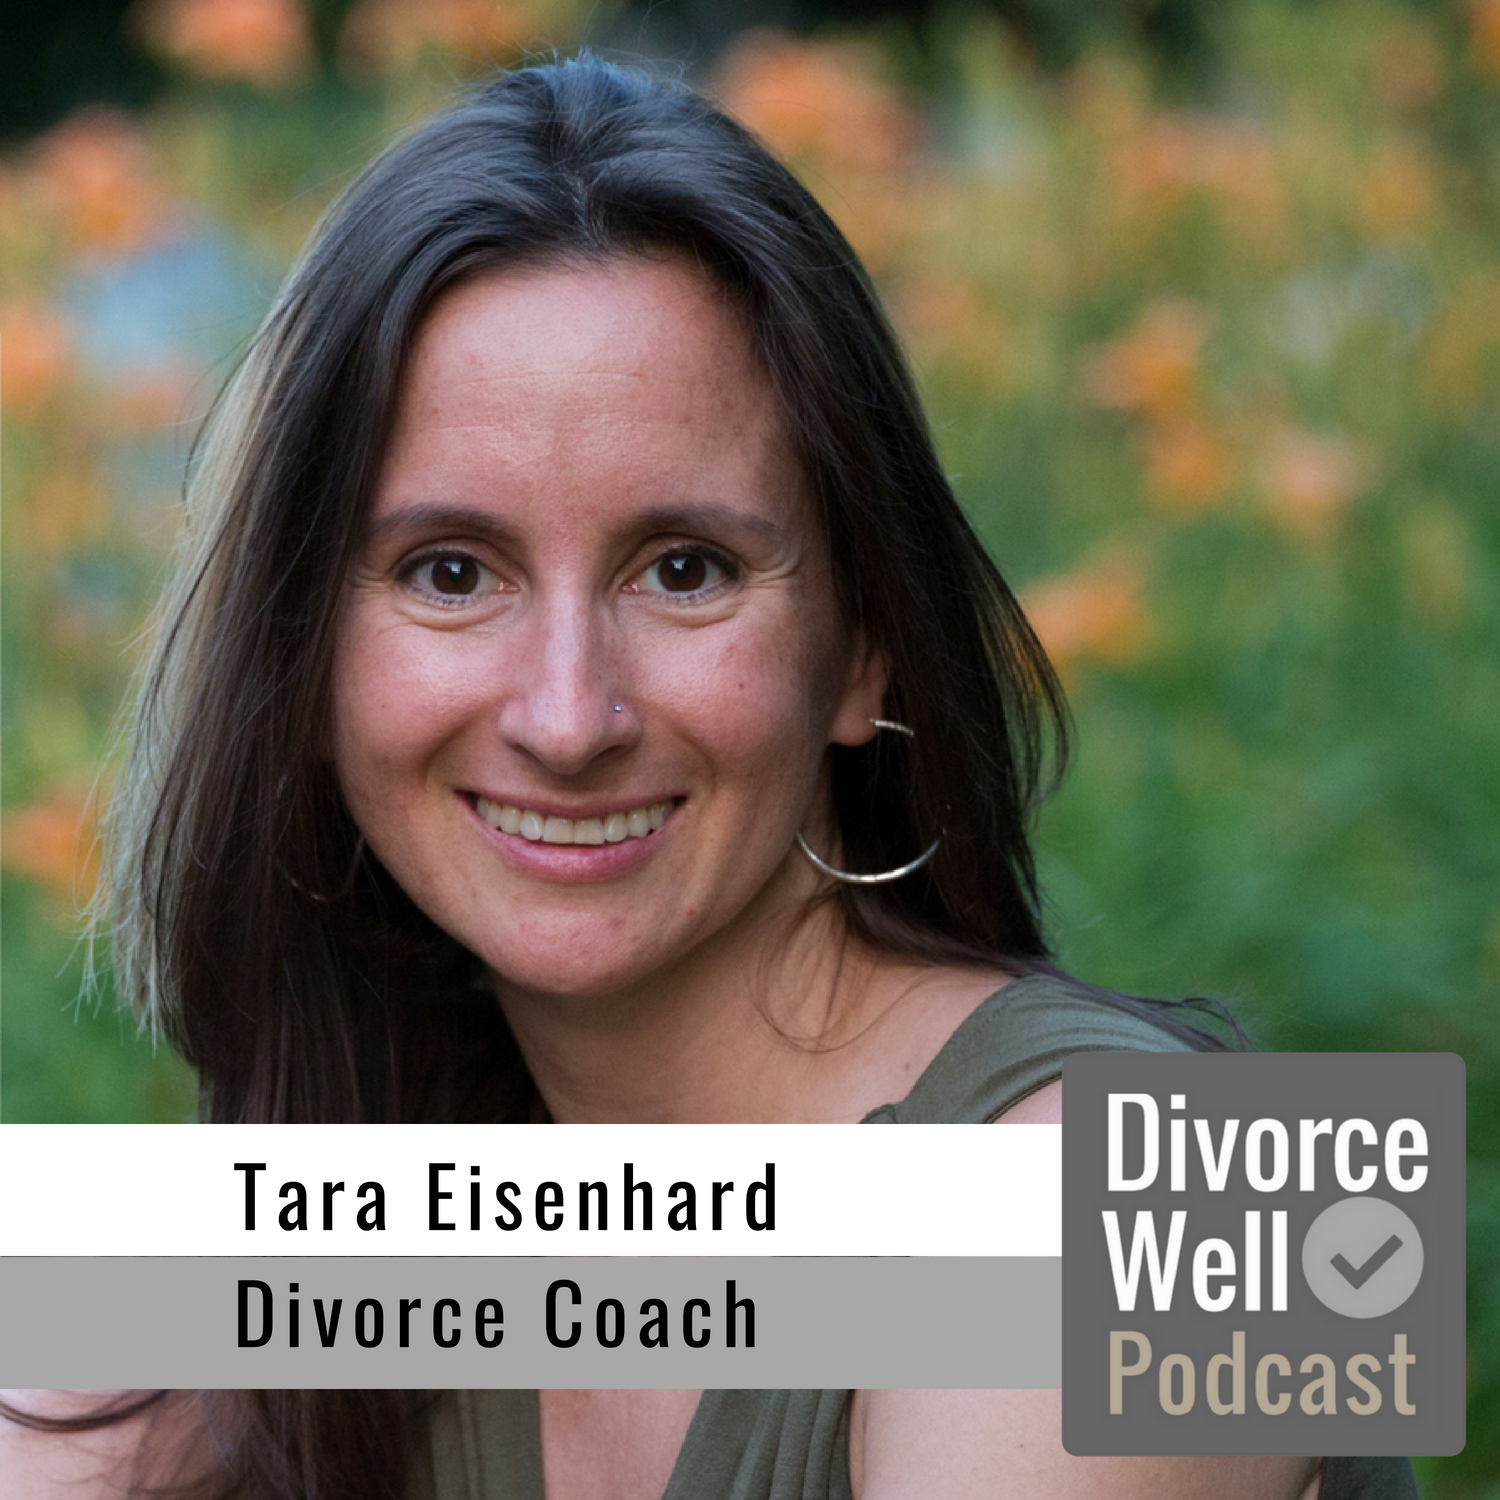 Tara Eisenhard on the Divorce Well Podcast about how a divorce coach can help with your separation